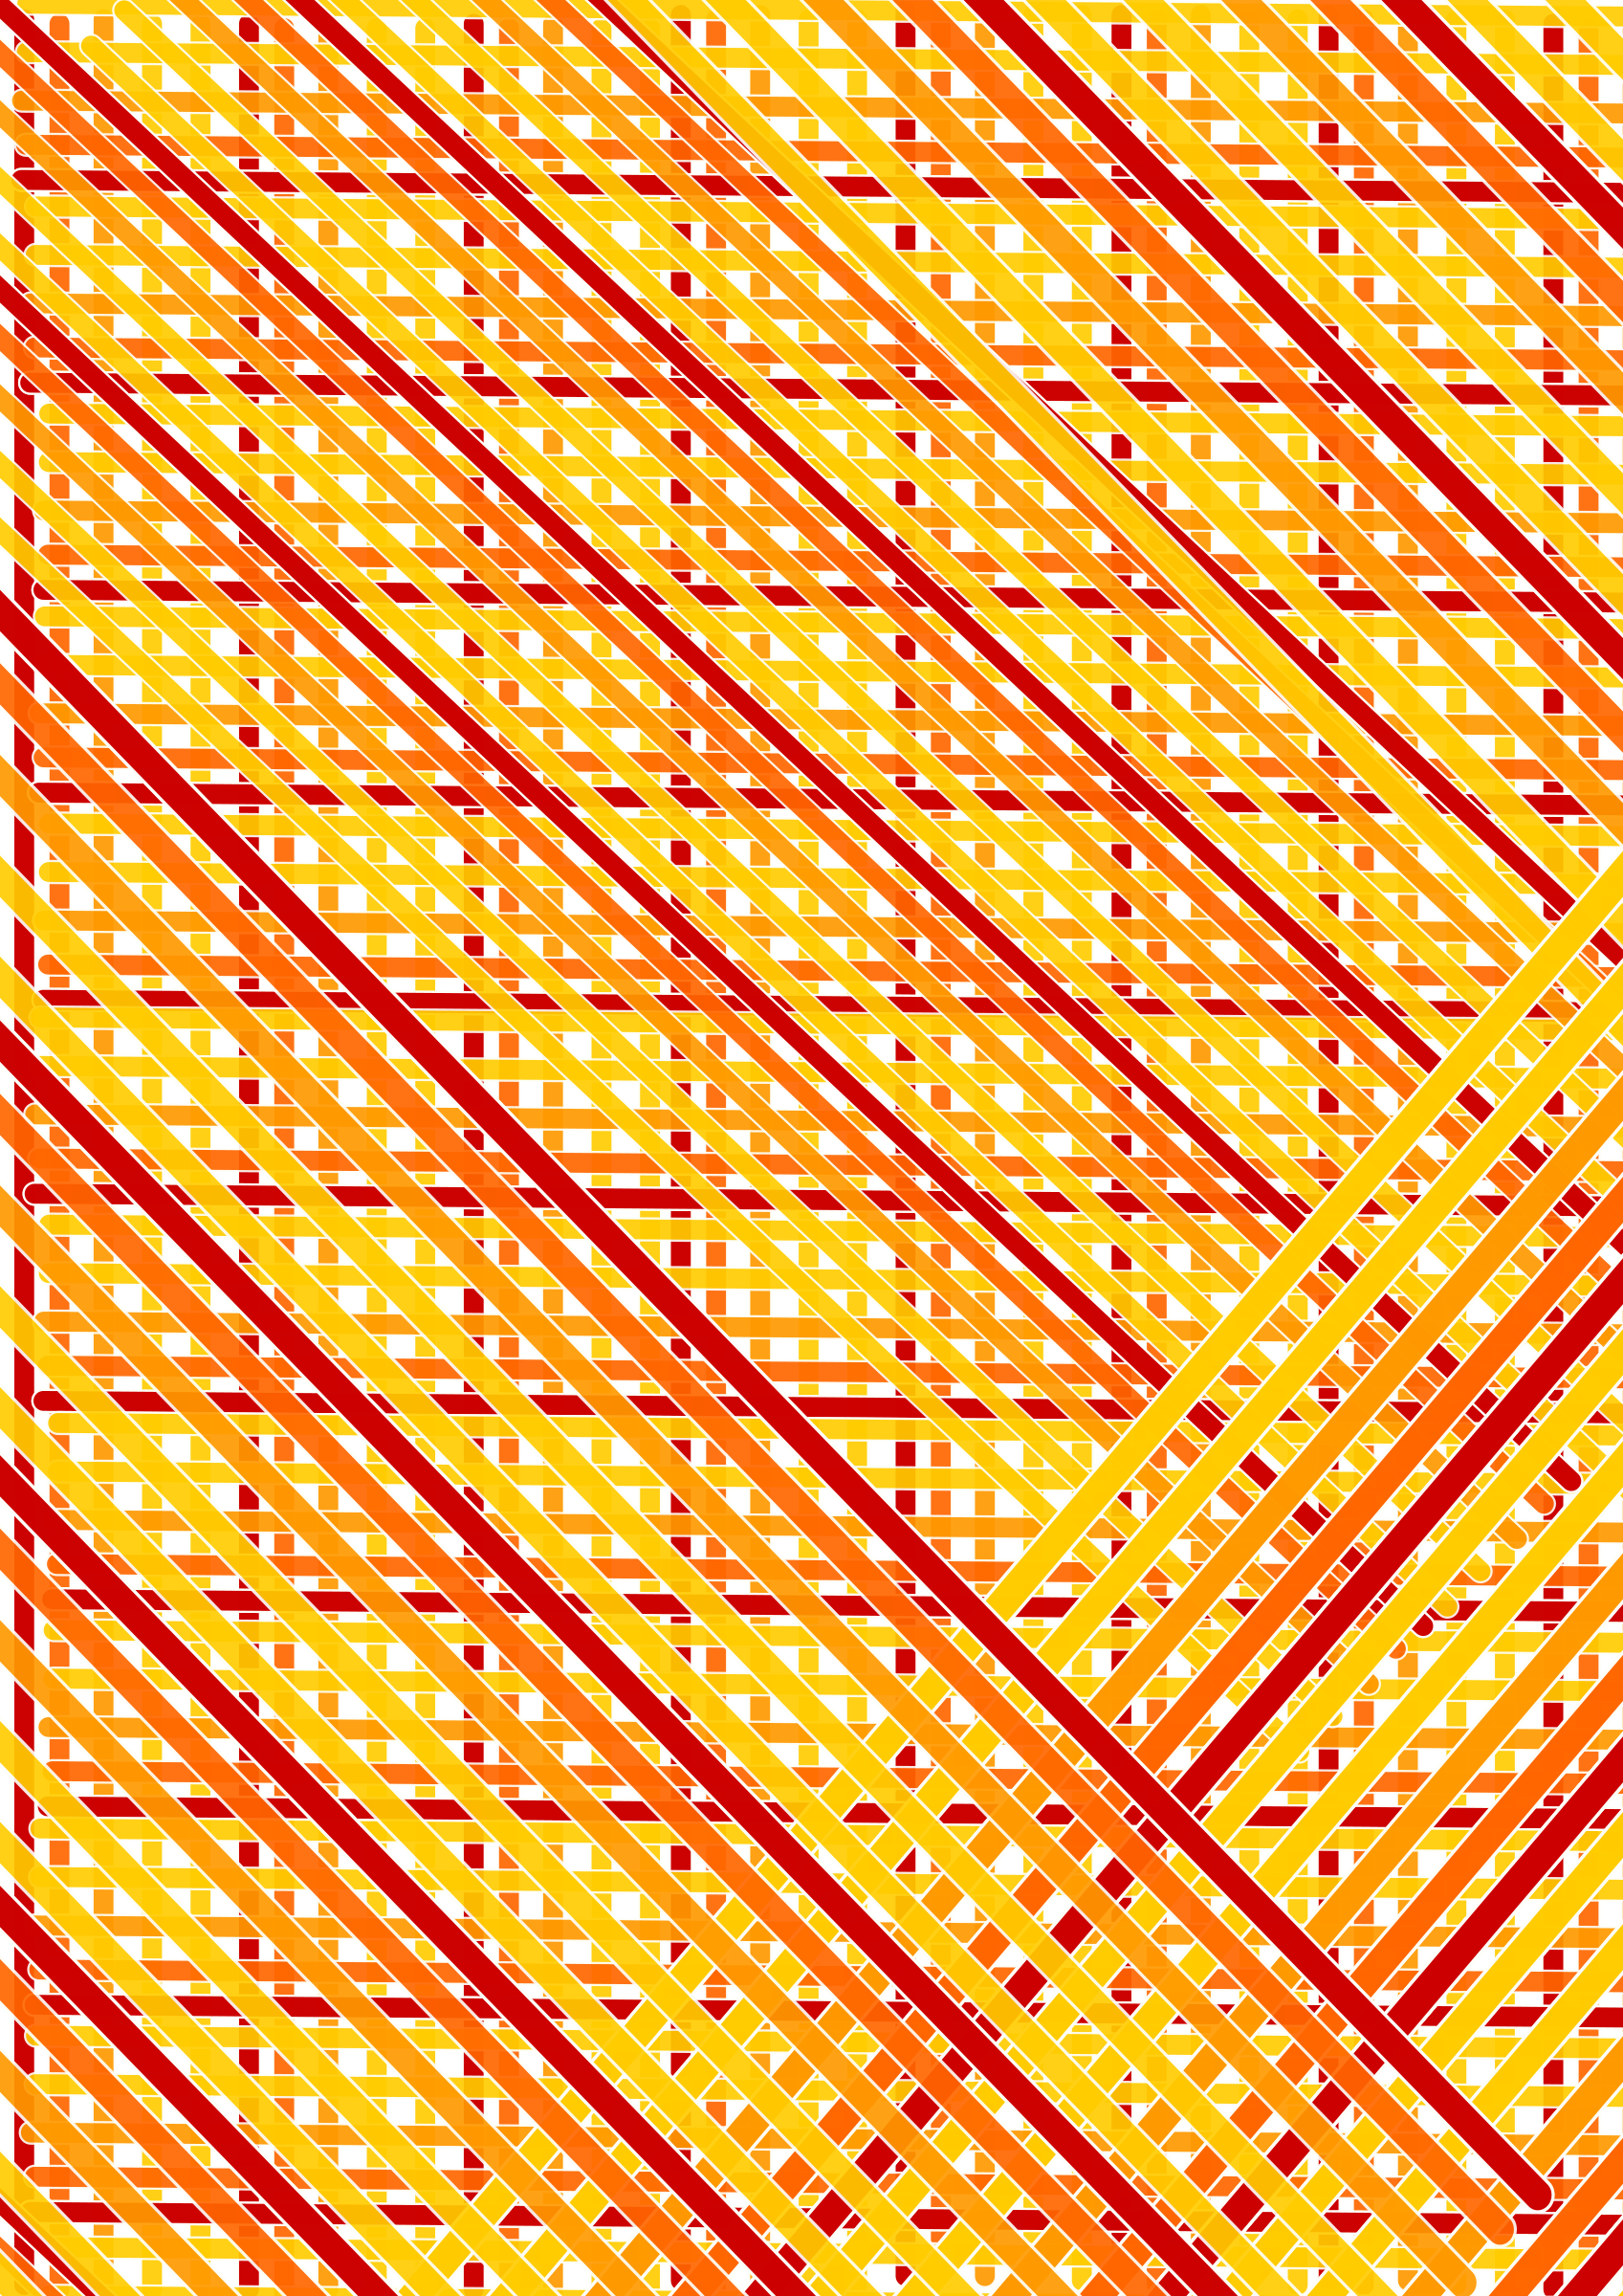 red orange lines across double diagonal by iglooo101